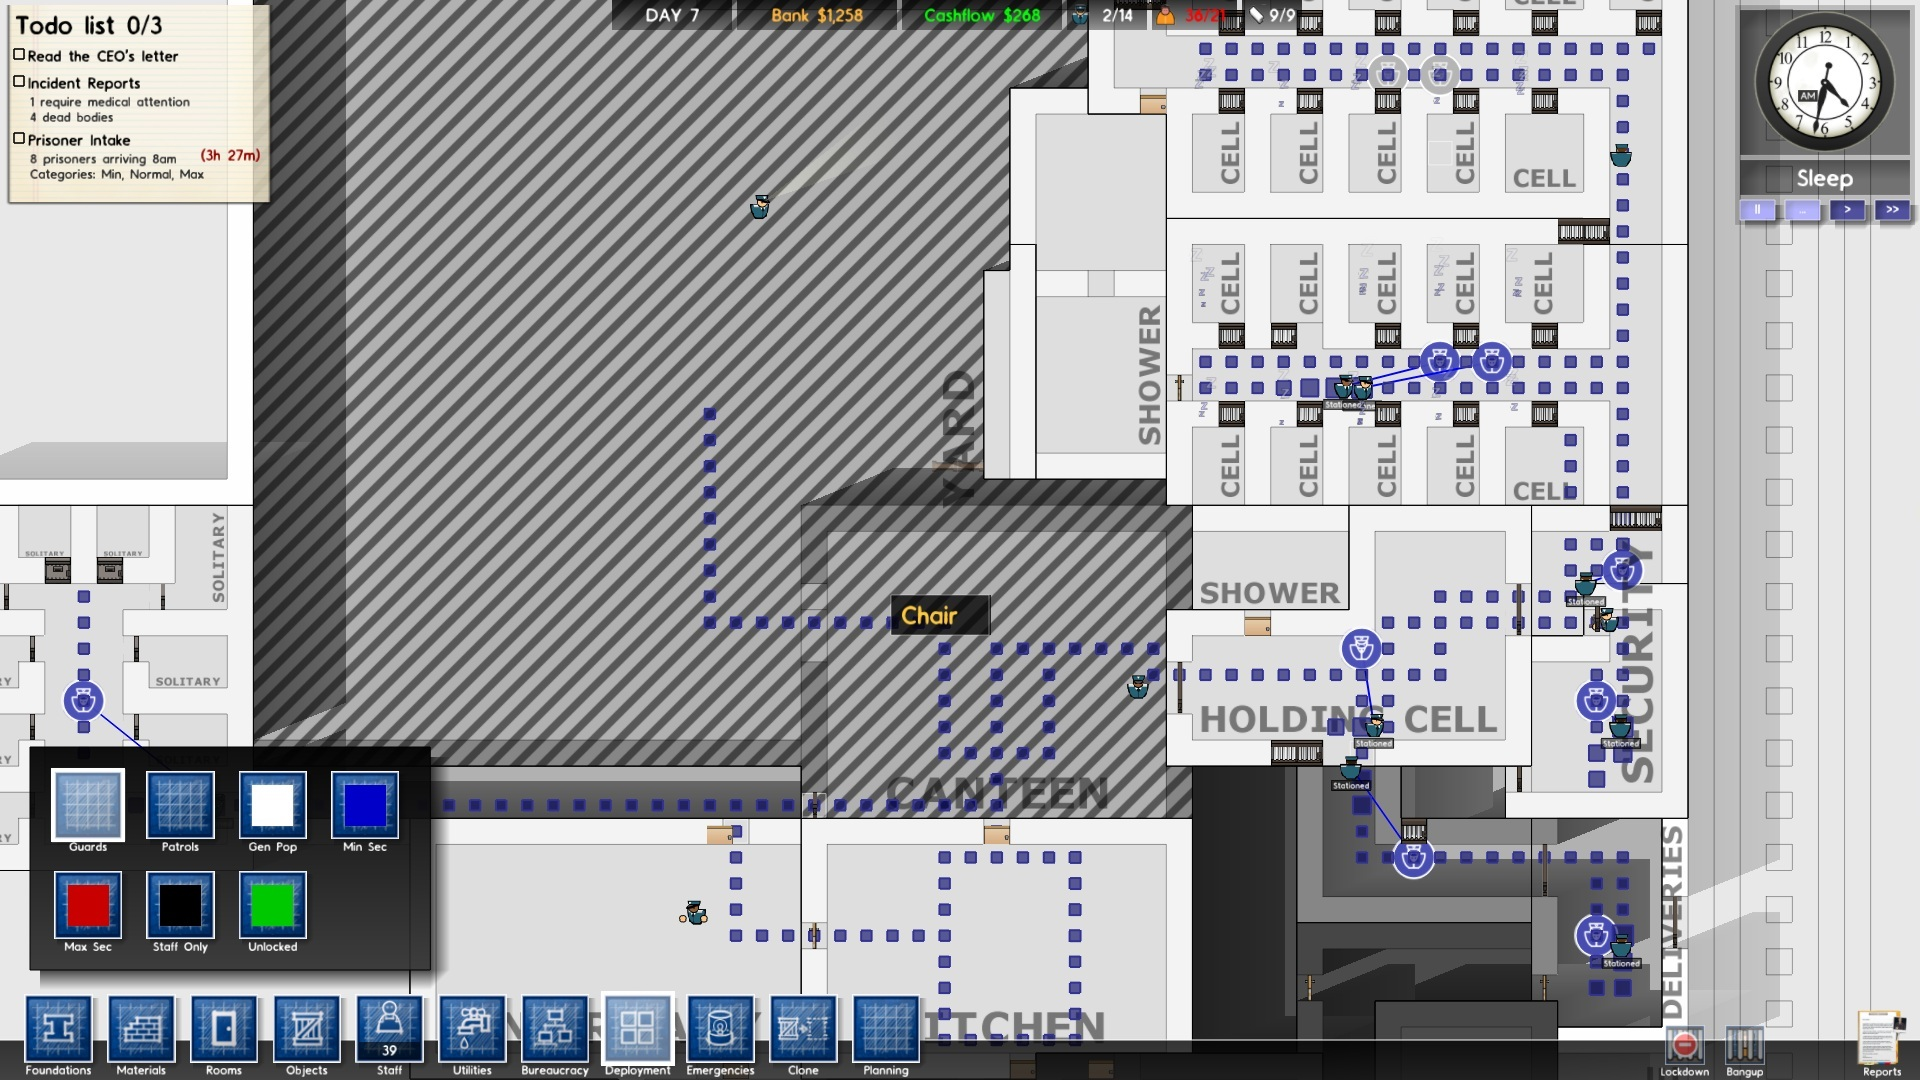 djzombie games game that foundation building before your trucks when delivered bugs cancel youve just gets construction found later testers after built been youre doesnt starting cost even most happen create change charges expensive place refund mind problem with theres then room item stored still arrives paid bought thats storage store mostly prison-architect